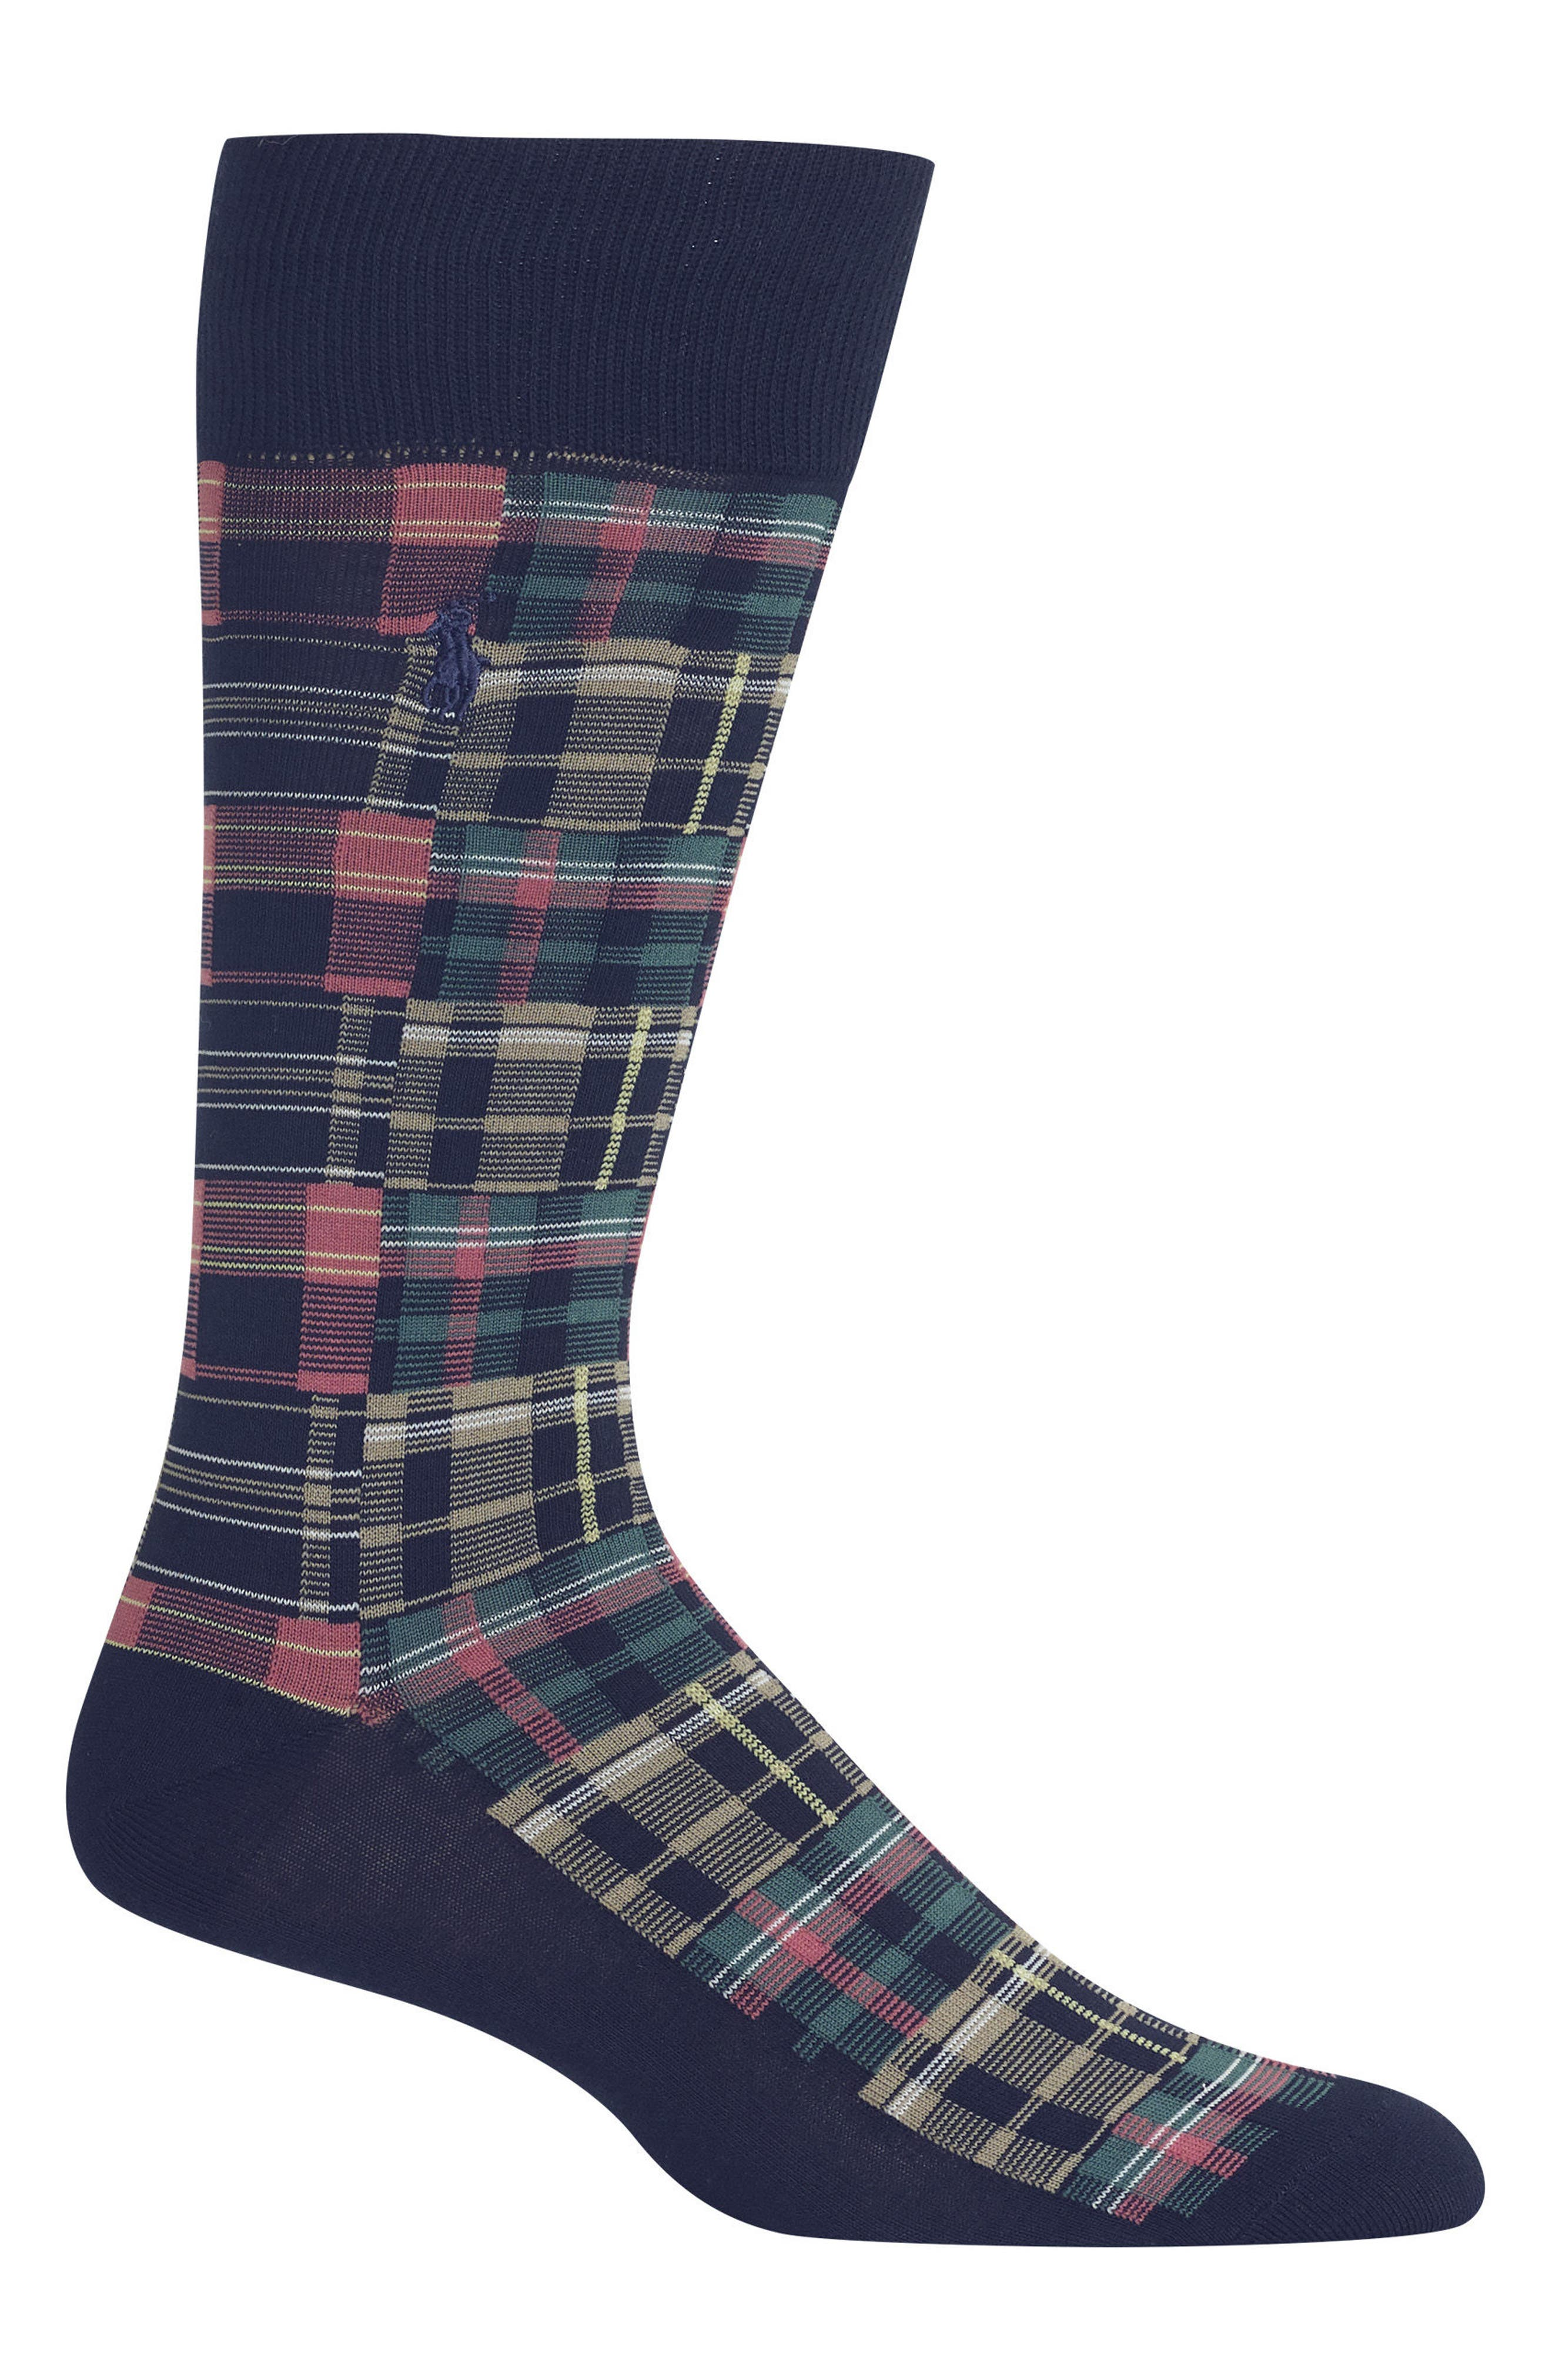 Ralph Lauren Patchwork Madras Socks,                             Main thumbnail 1, color,                             401